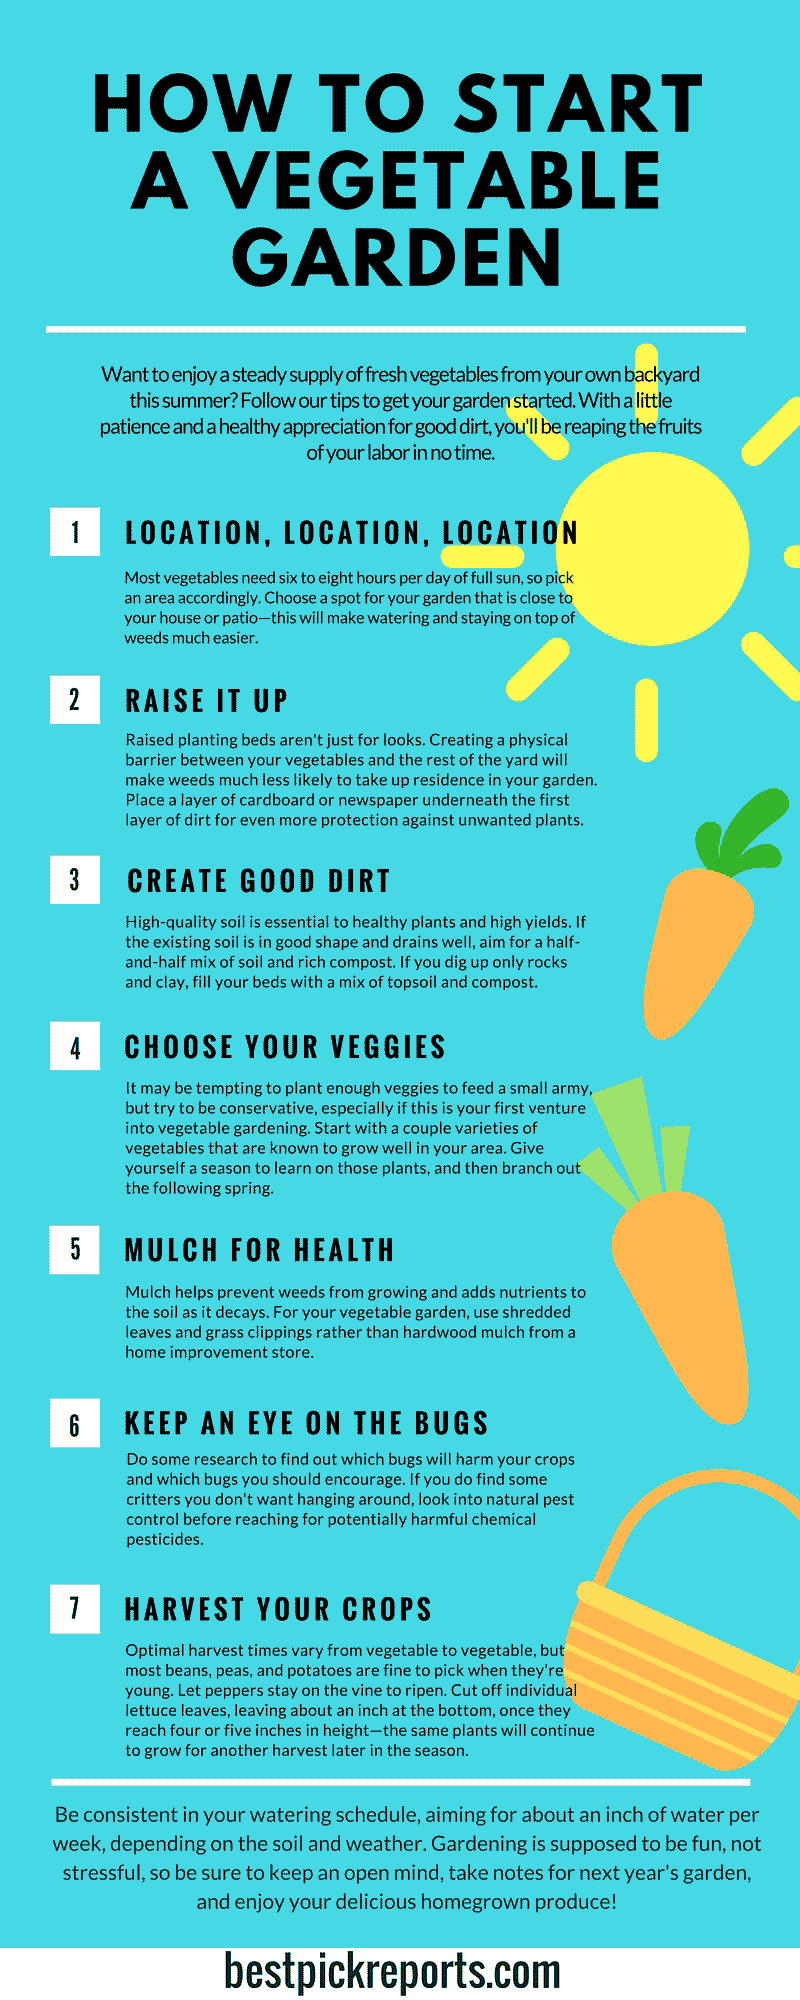 how to start a vegetable garden infographic